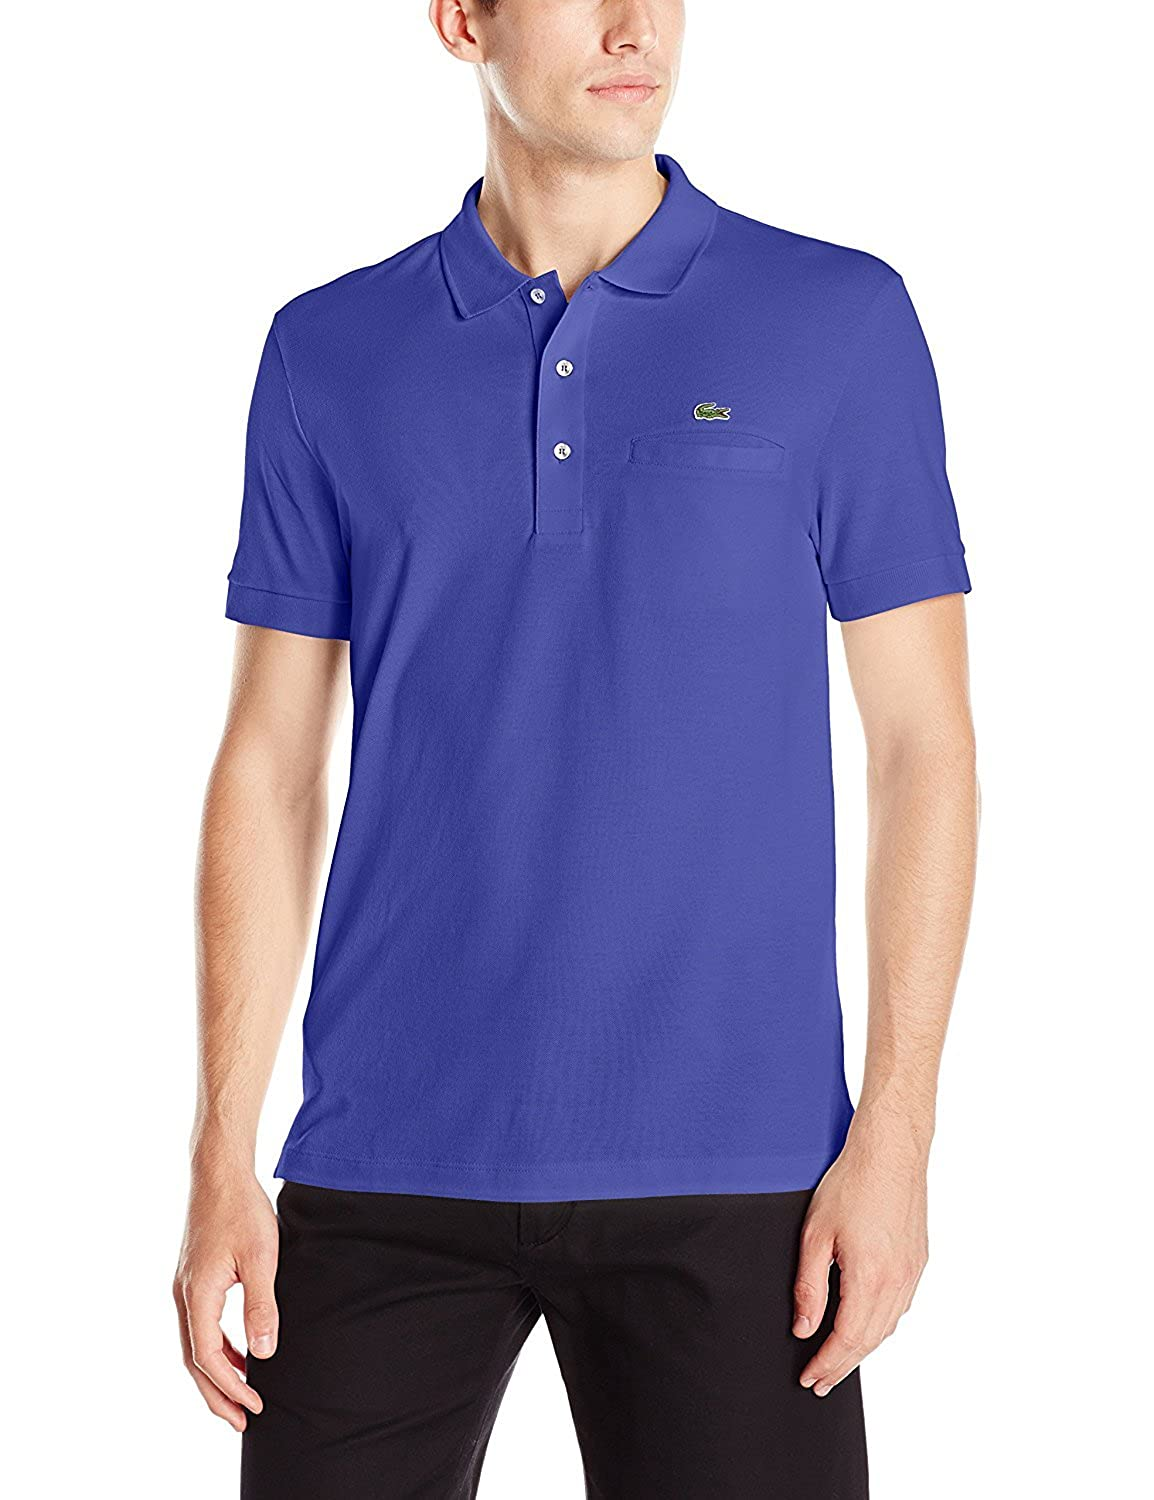 Lacoste Mens Short Sleeve Regular Fit Solid Polo with Pocket